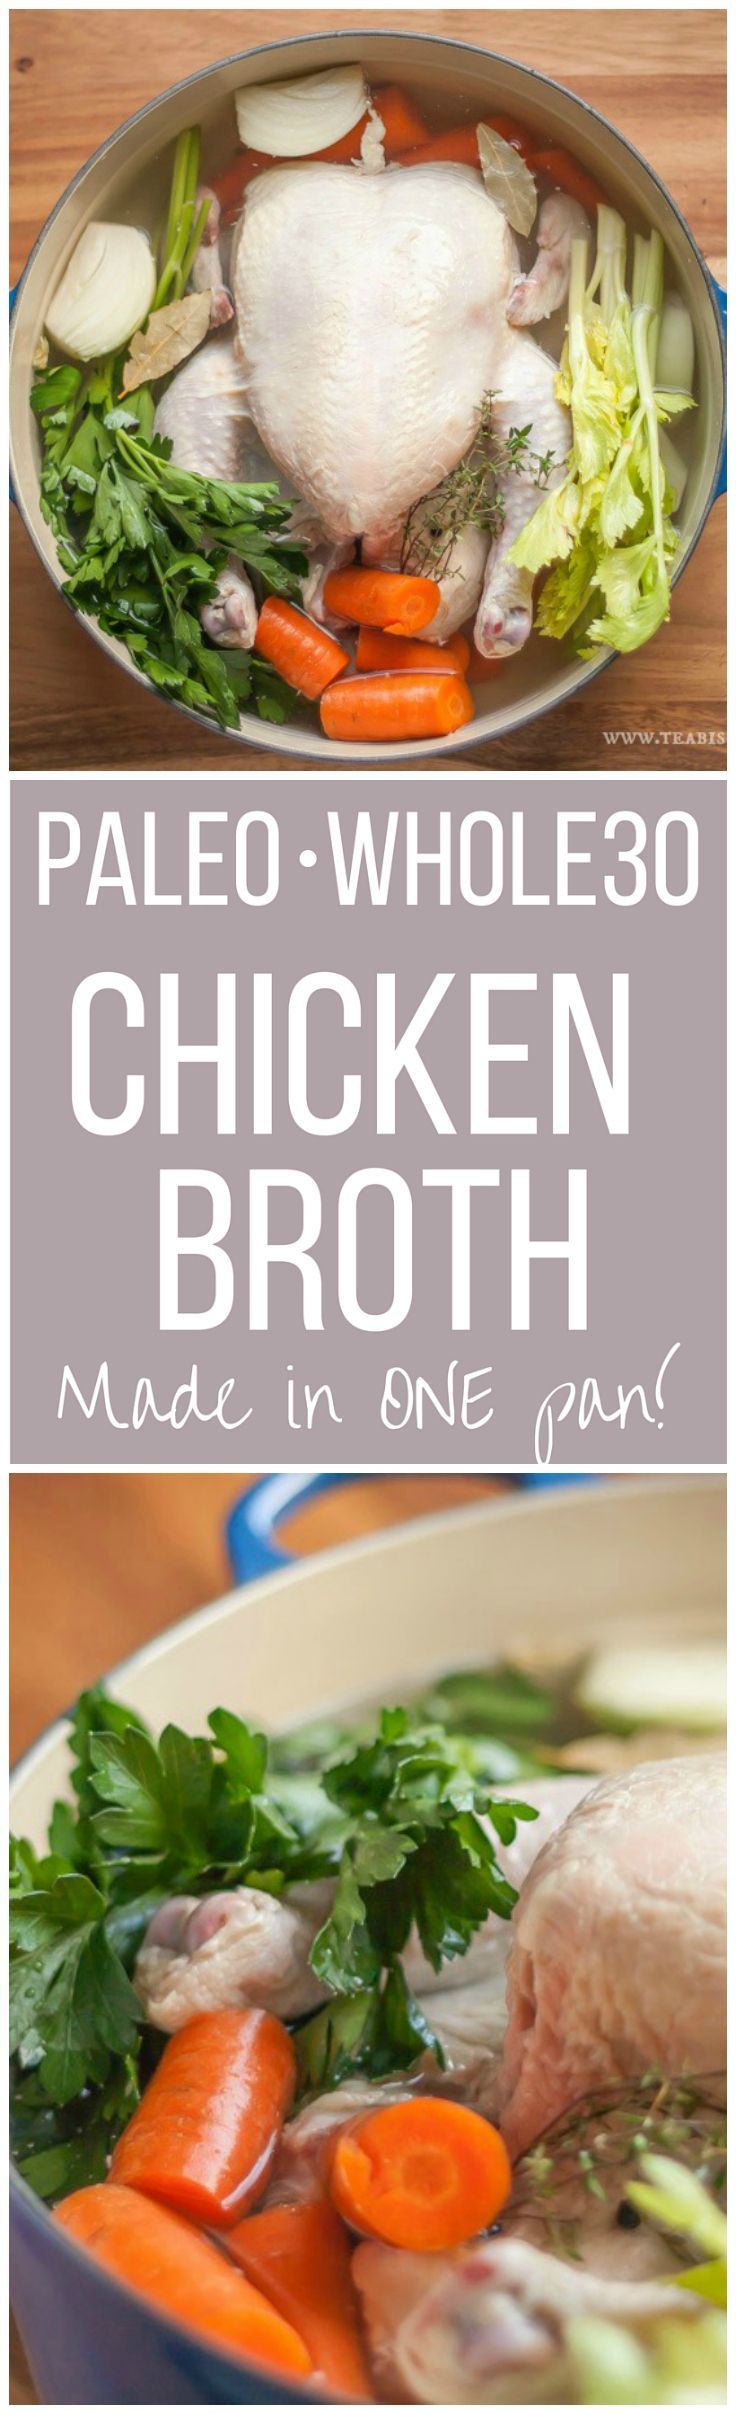 A very easy One Pot recipe for homemade Paleo Chicken Broth (& Whole 30) that's a great alternative to  the store bought varieties | Whole30 | Gluten Free